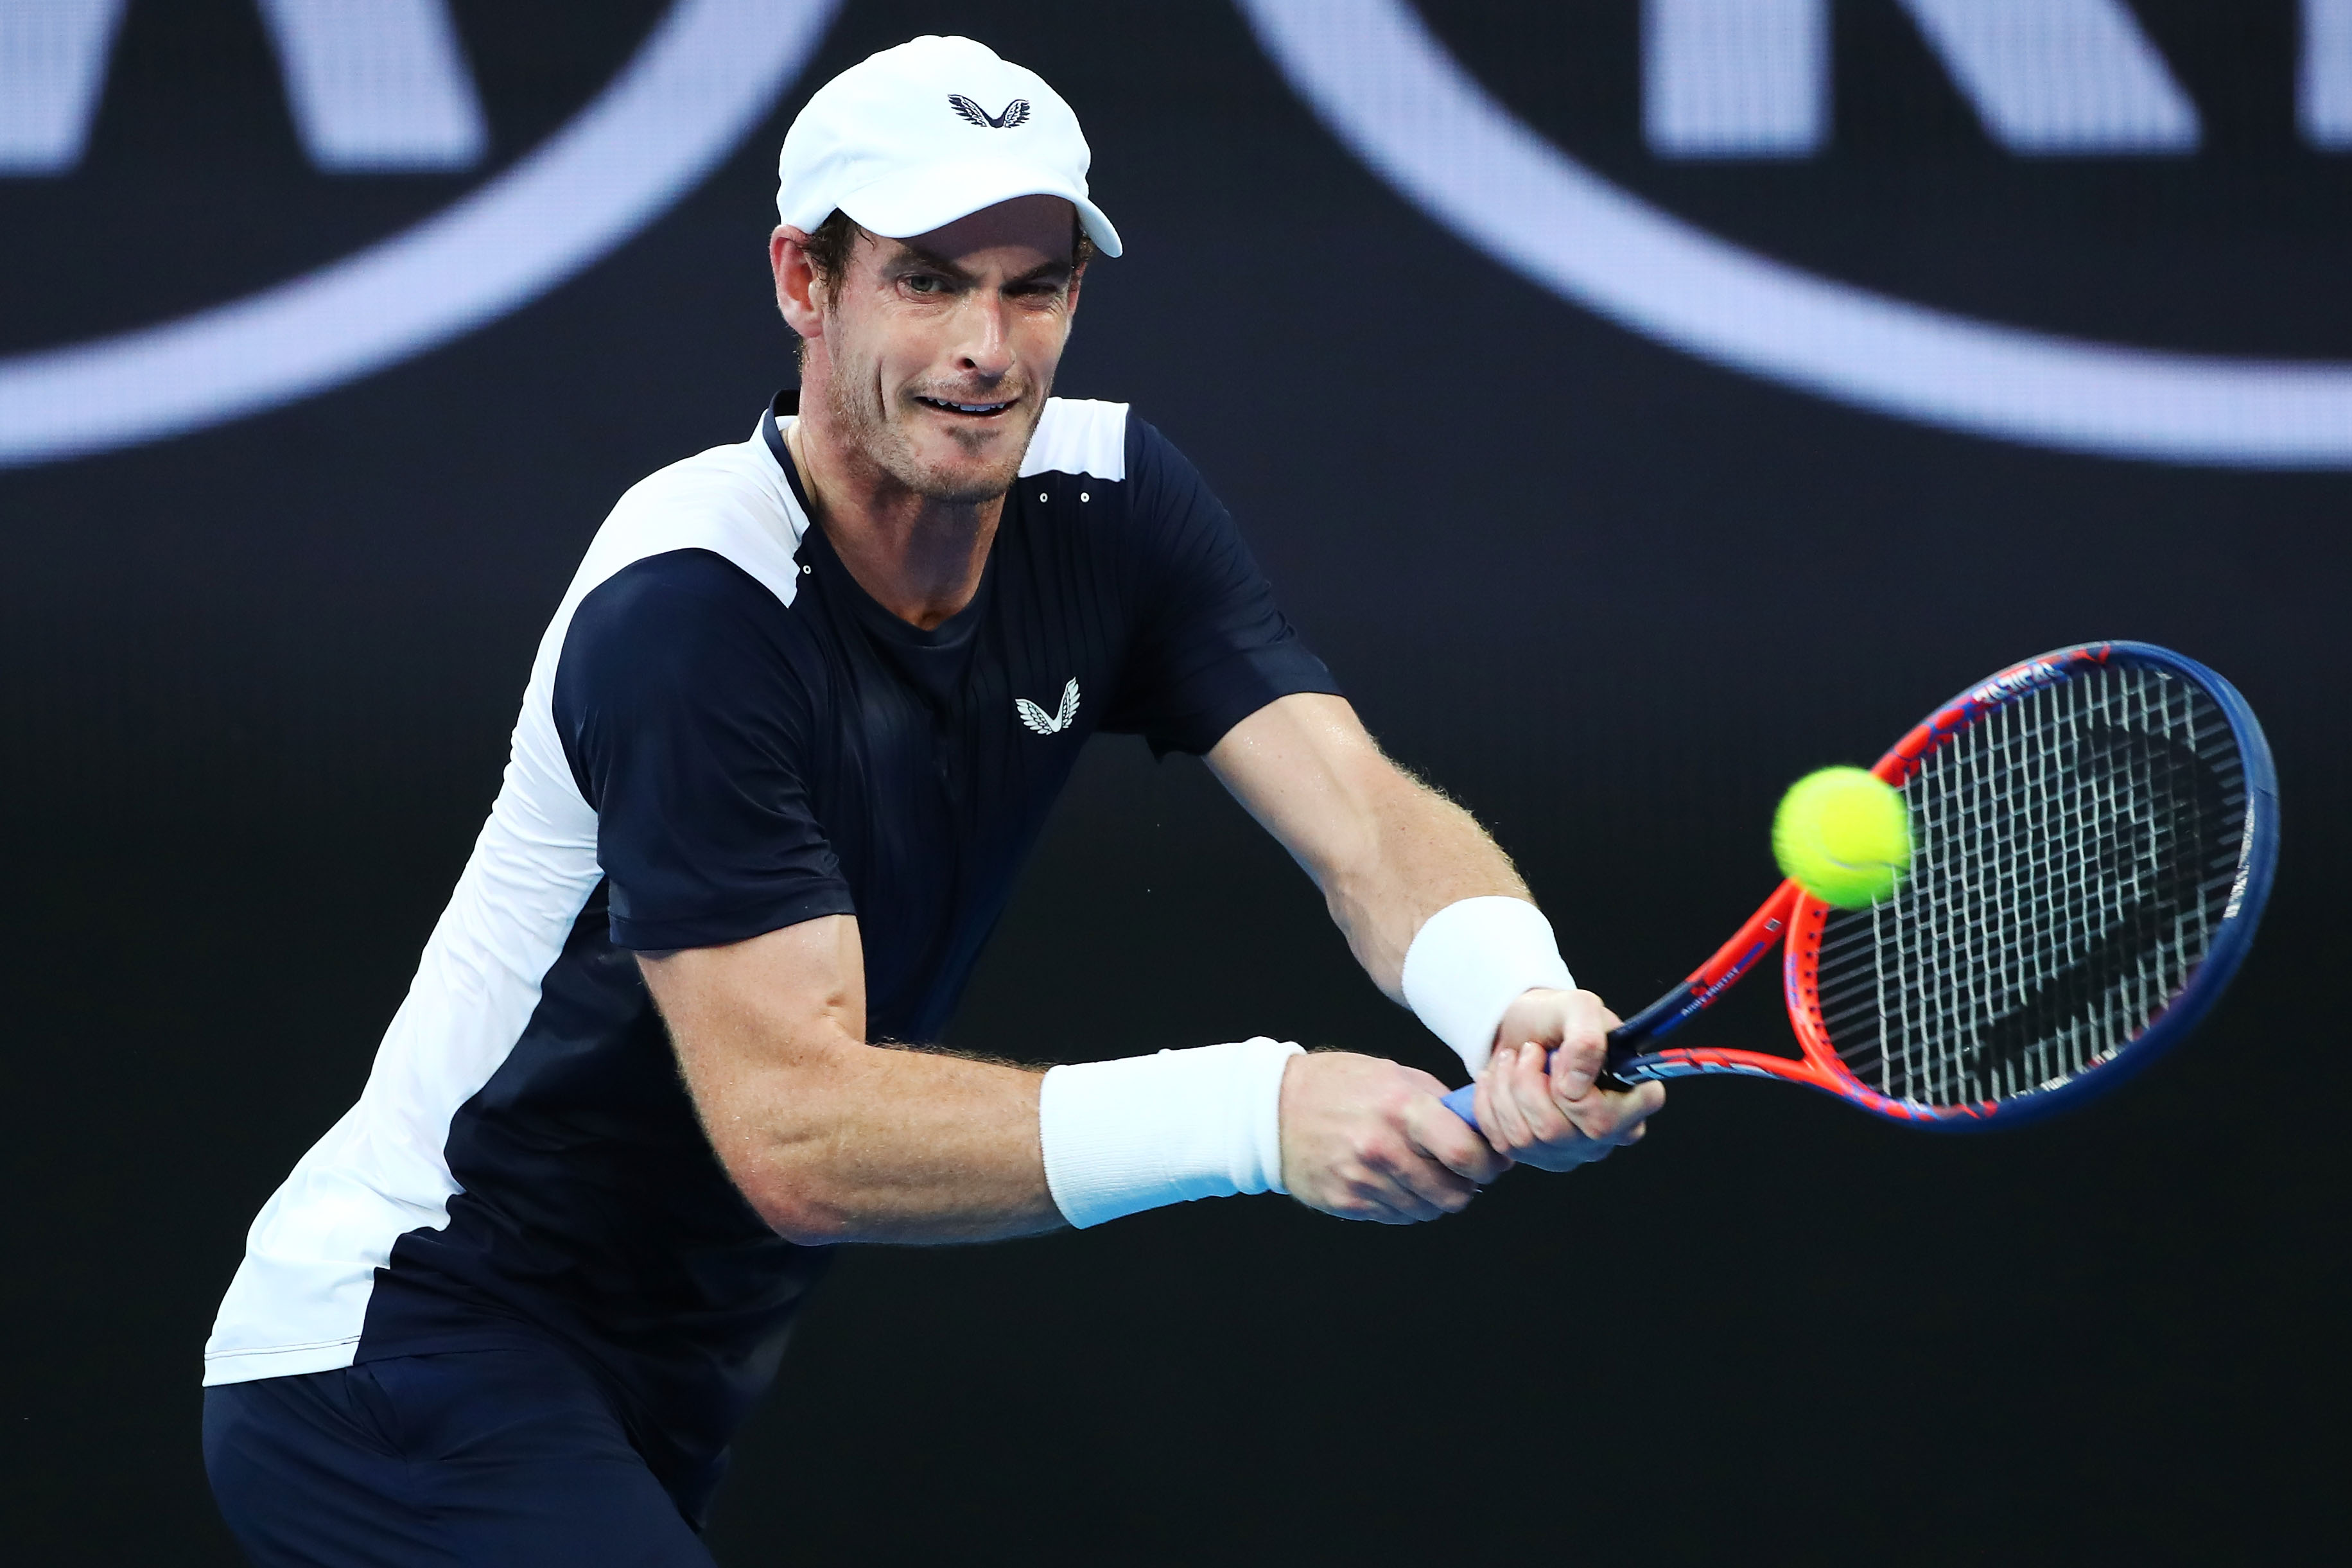 Andy Murray of Great Britain plays a backhand in his first round match against Roberto Bautista Agut of Spain during day one of the 2019 Australian Open at Melbourne Park on January 14, 2019 in Melbourne, Australia.